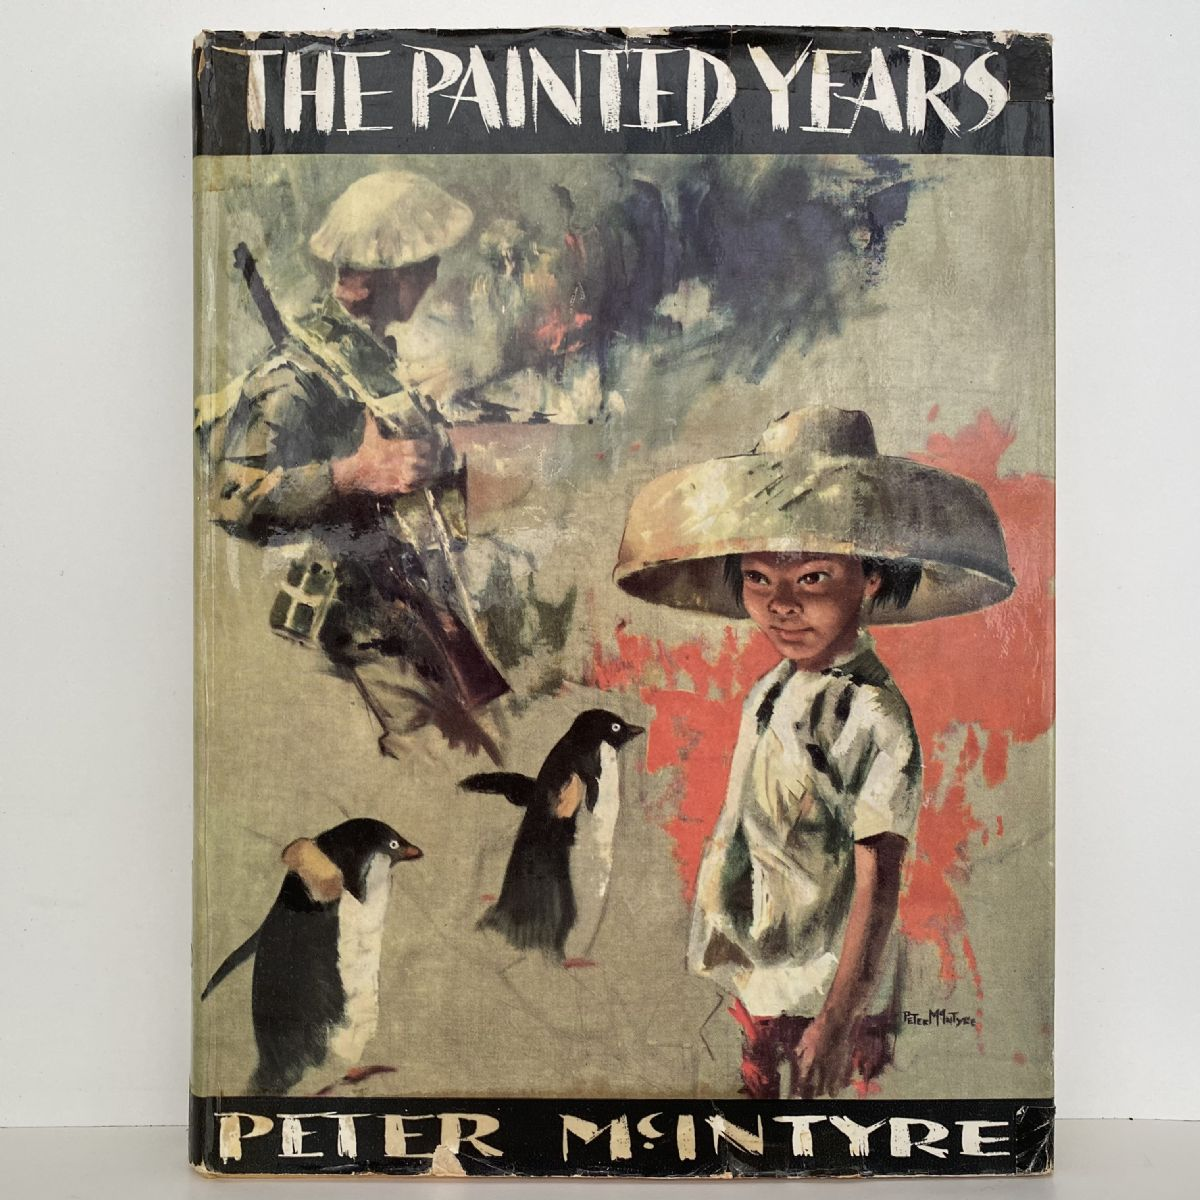 The Painted Years